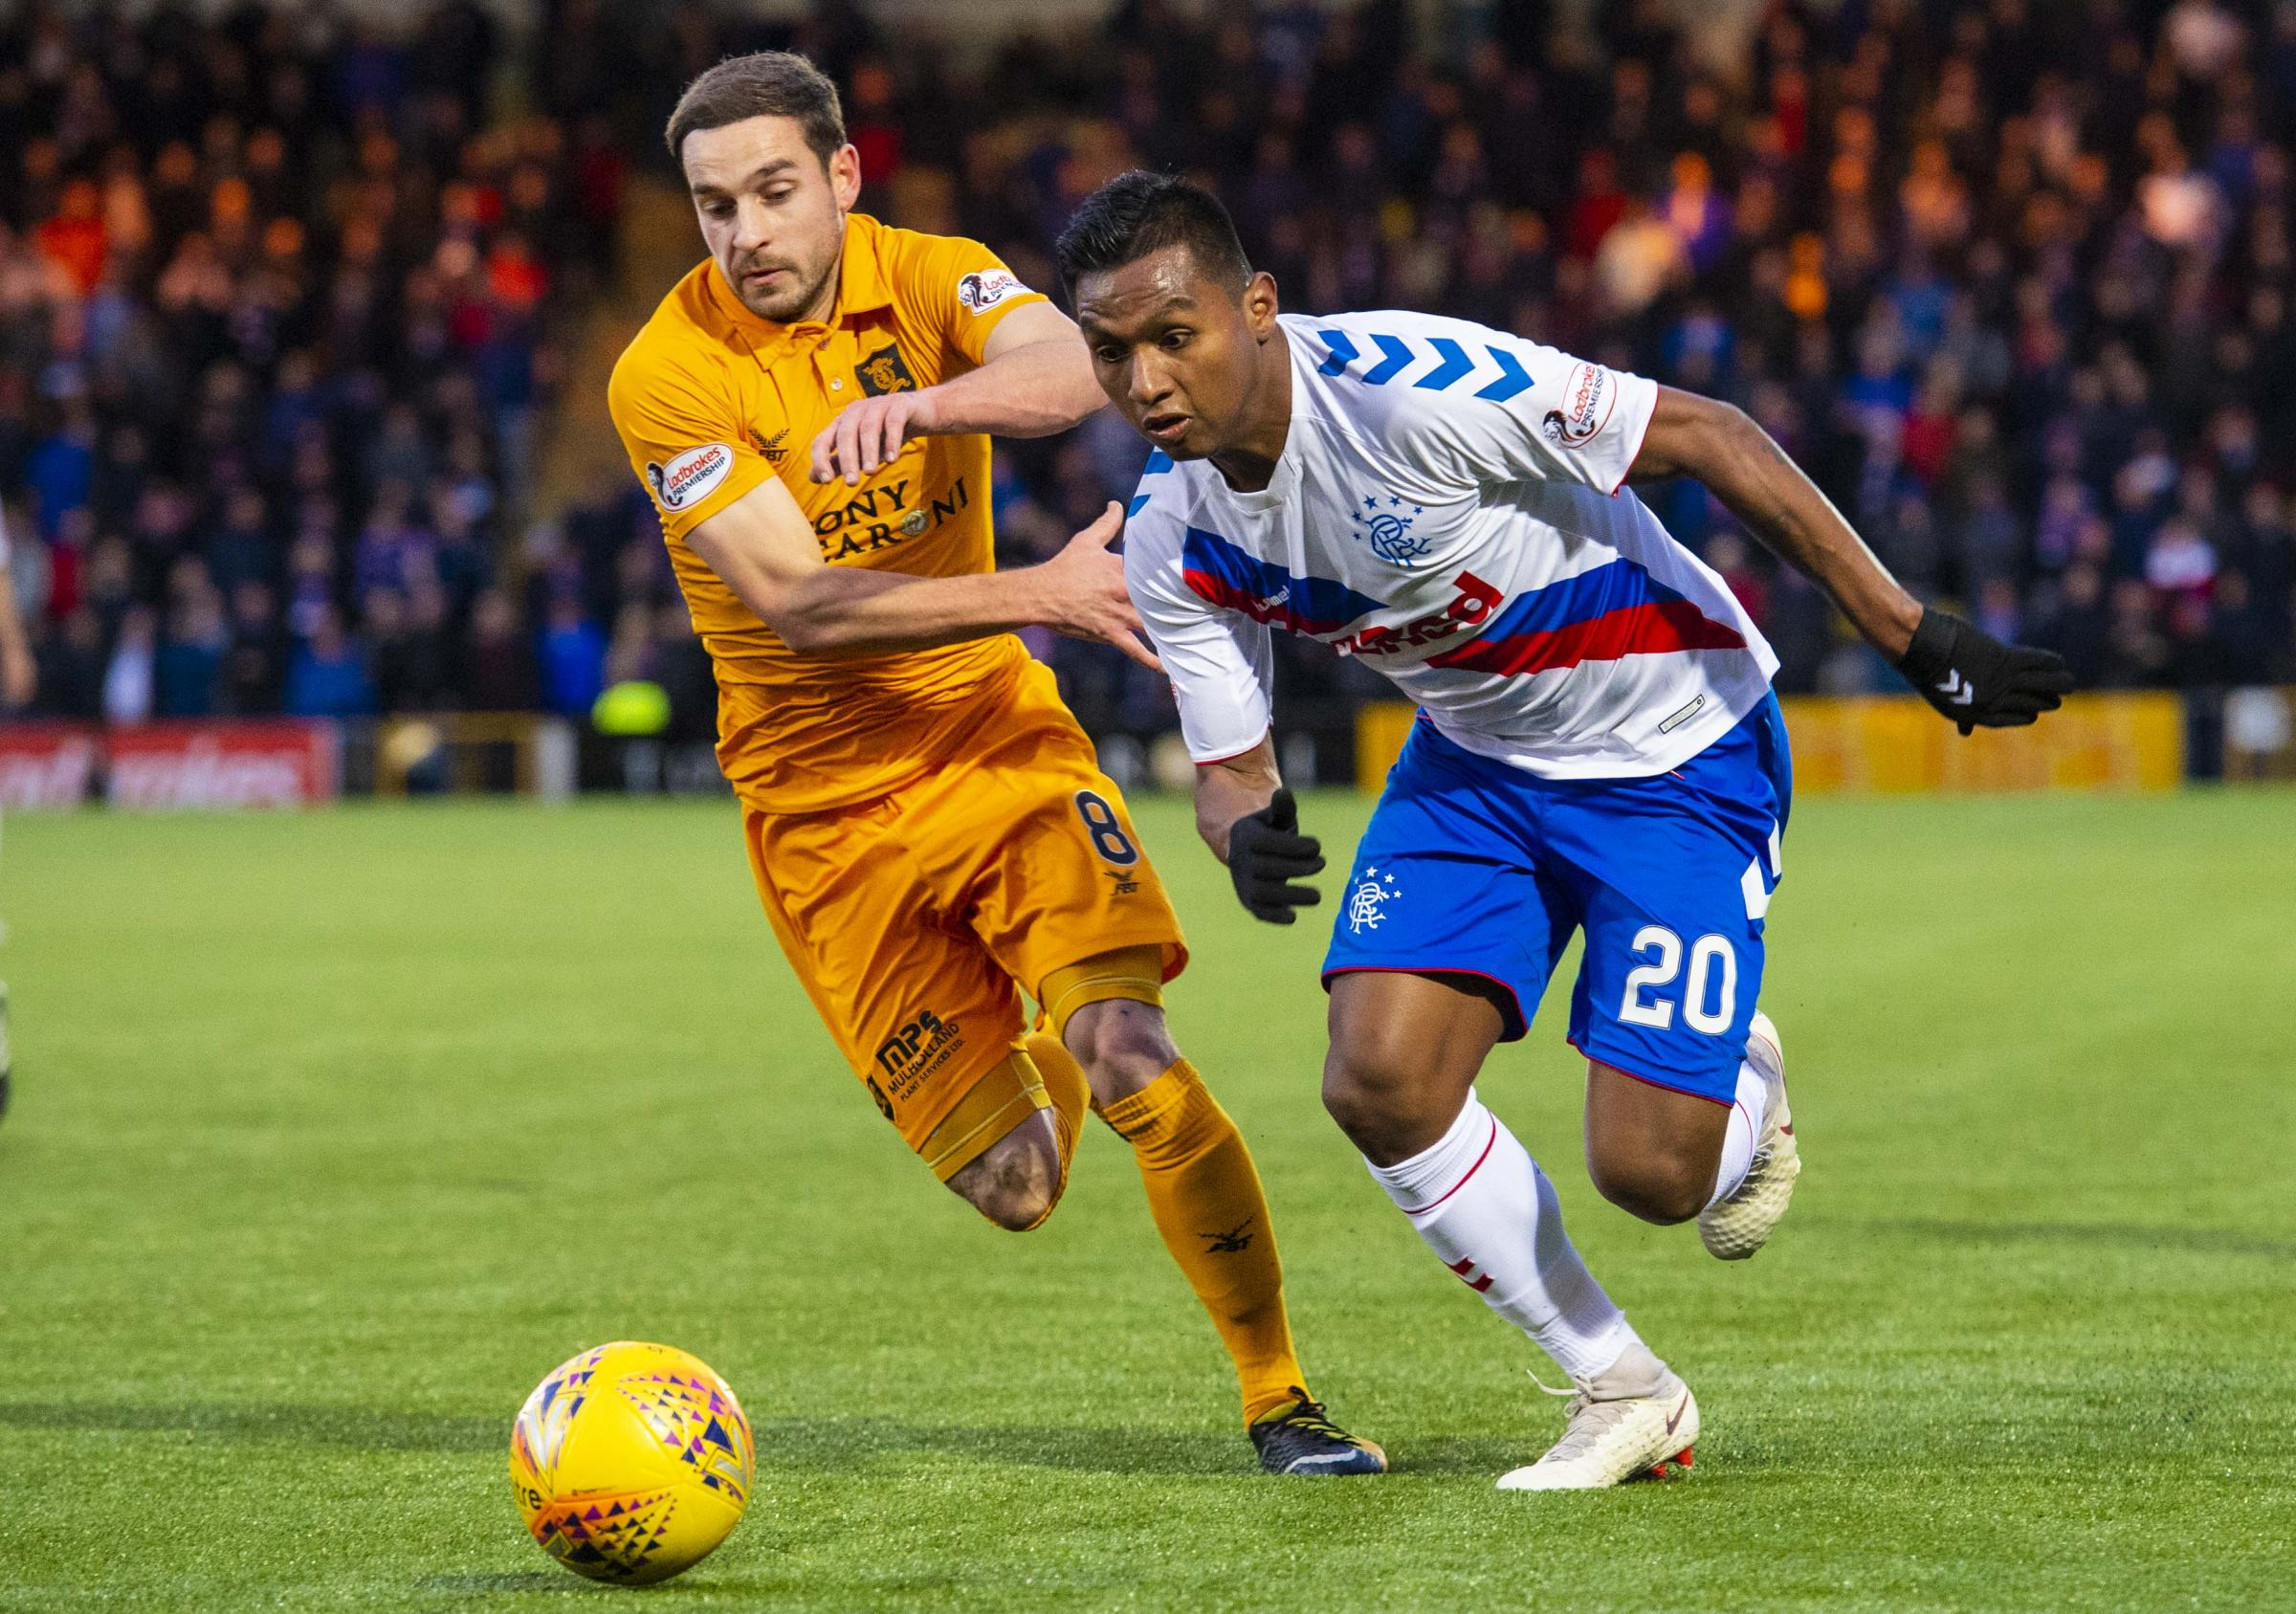 Rangers' away clash with Livingston in Betfred Cup quarter-final picked for BT Sport